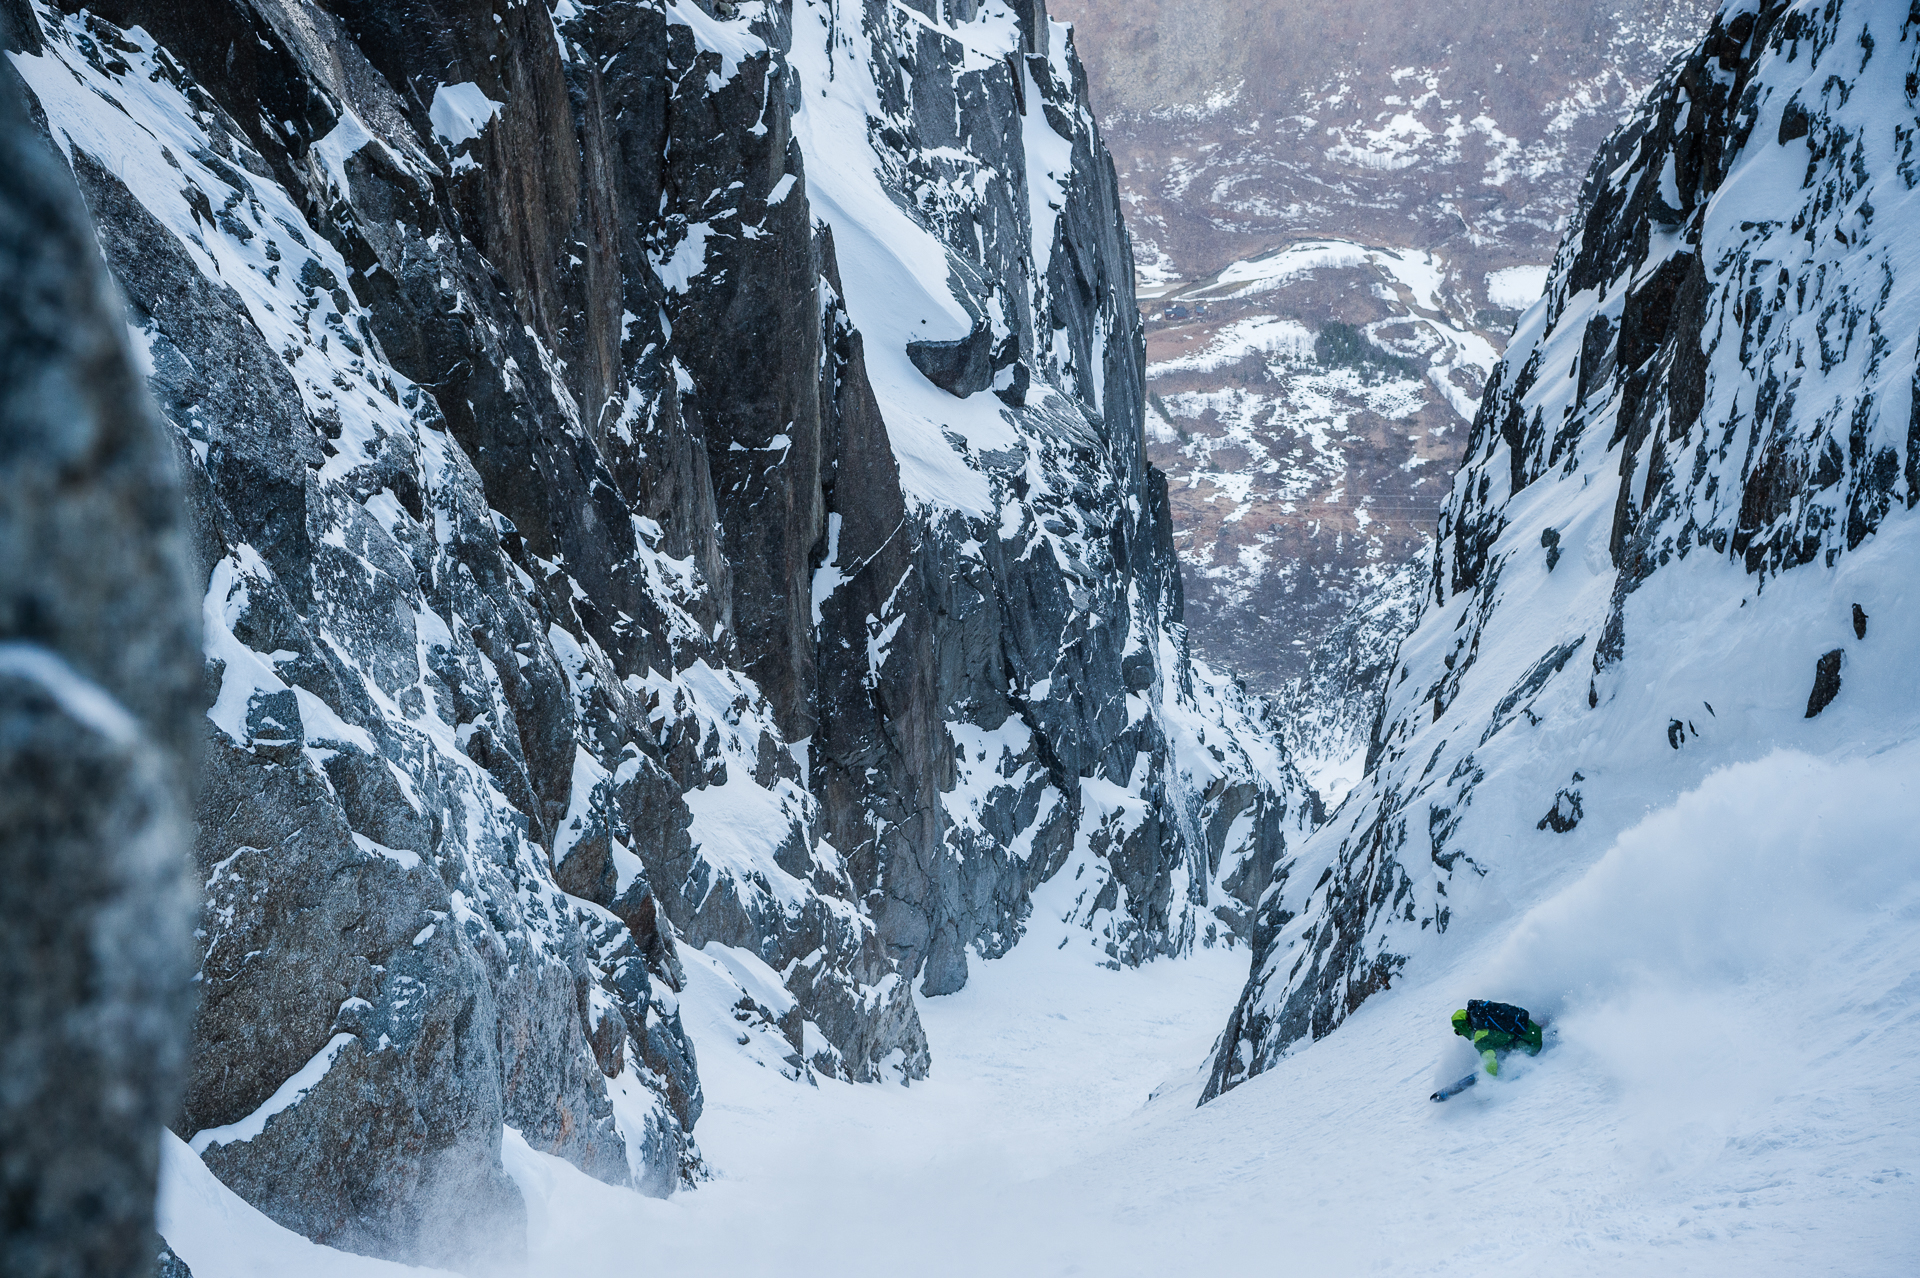 Chad Sayers skis the Skamdalsrenna in powder. Just days later, when the author arrived after a full day's approach, warming temperatures and rockfall turned the group around.